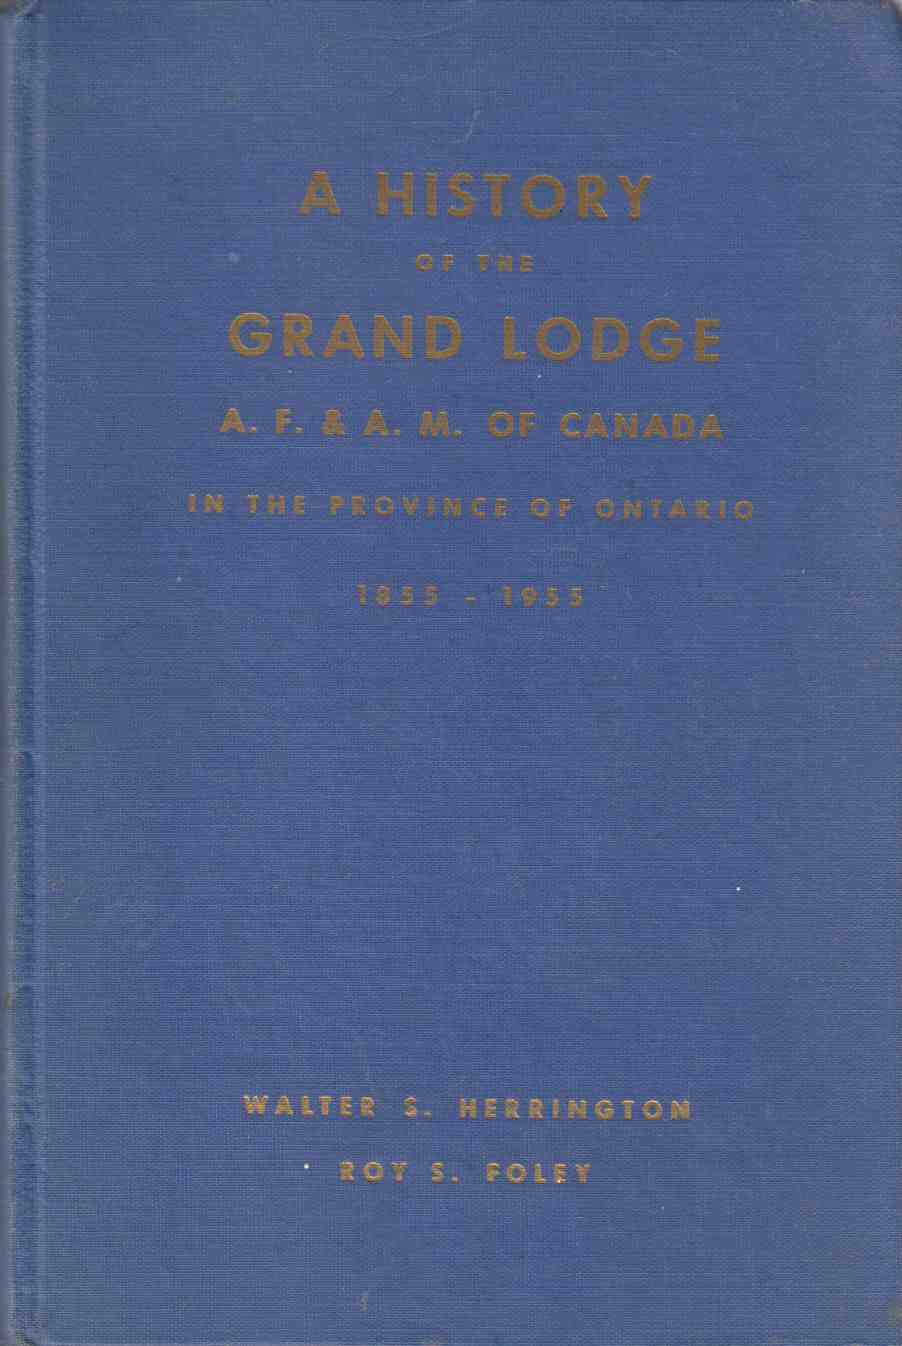 Image for A History of the Grand Lodge A.F. & A.M. Of Canada in the Province of Ontario 1855 - 1955